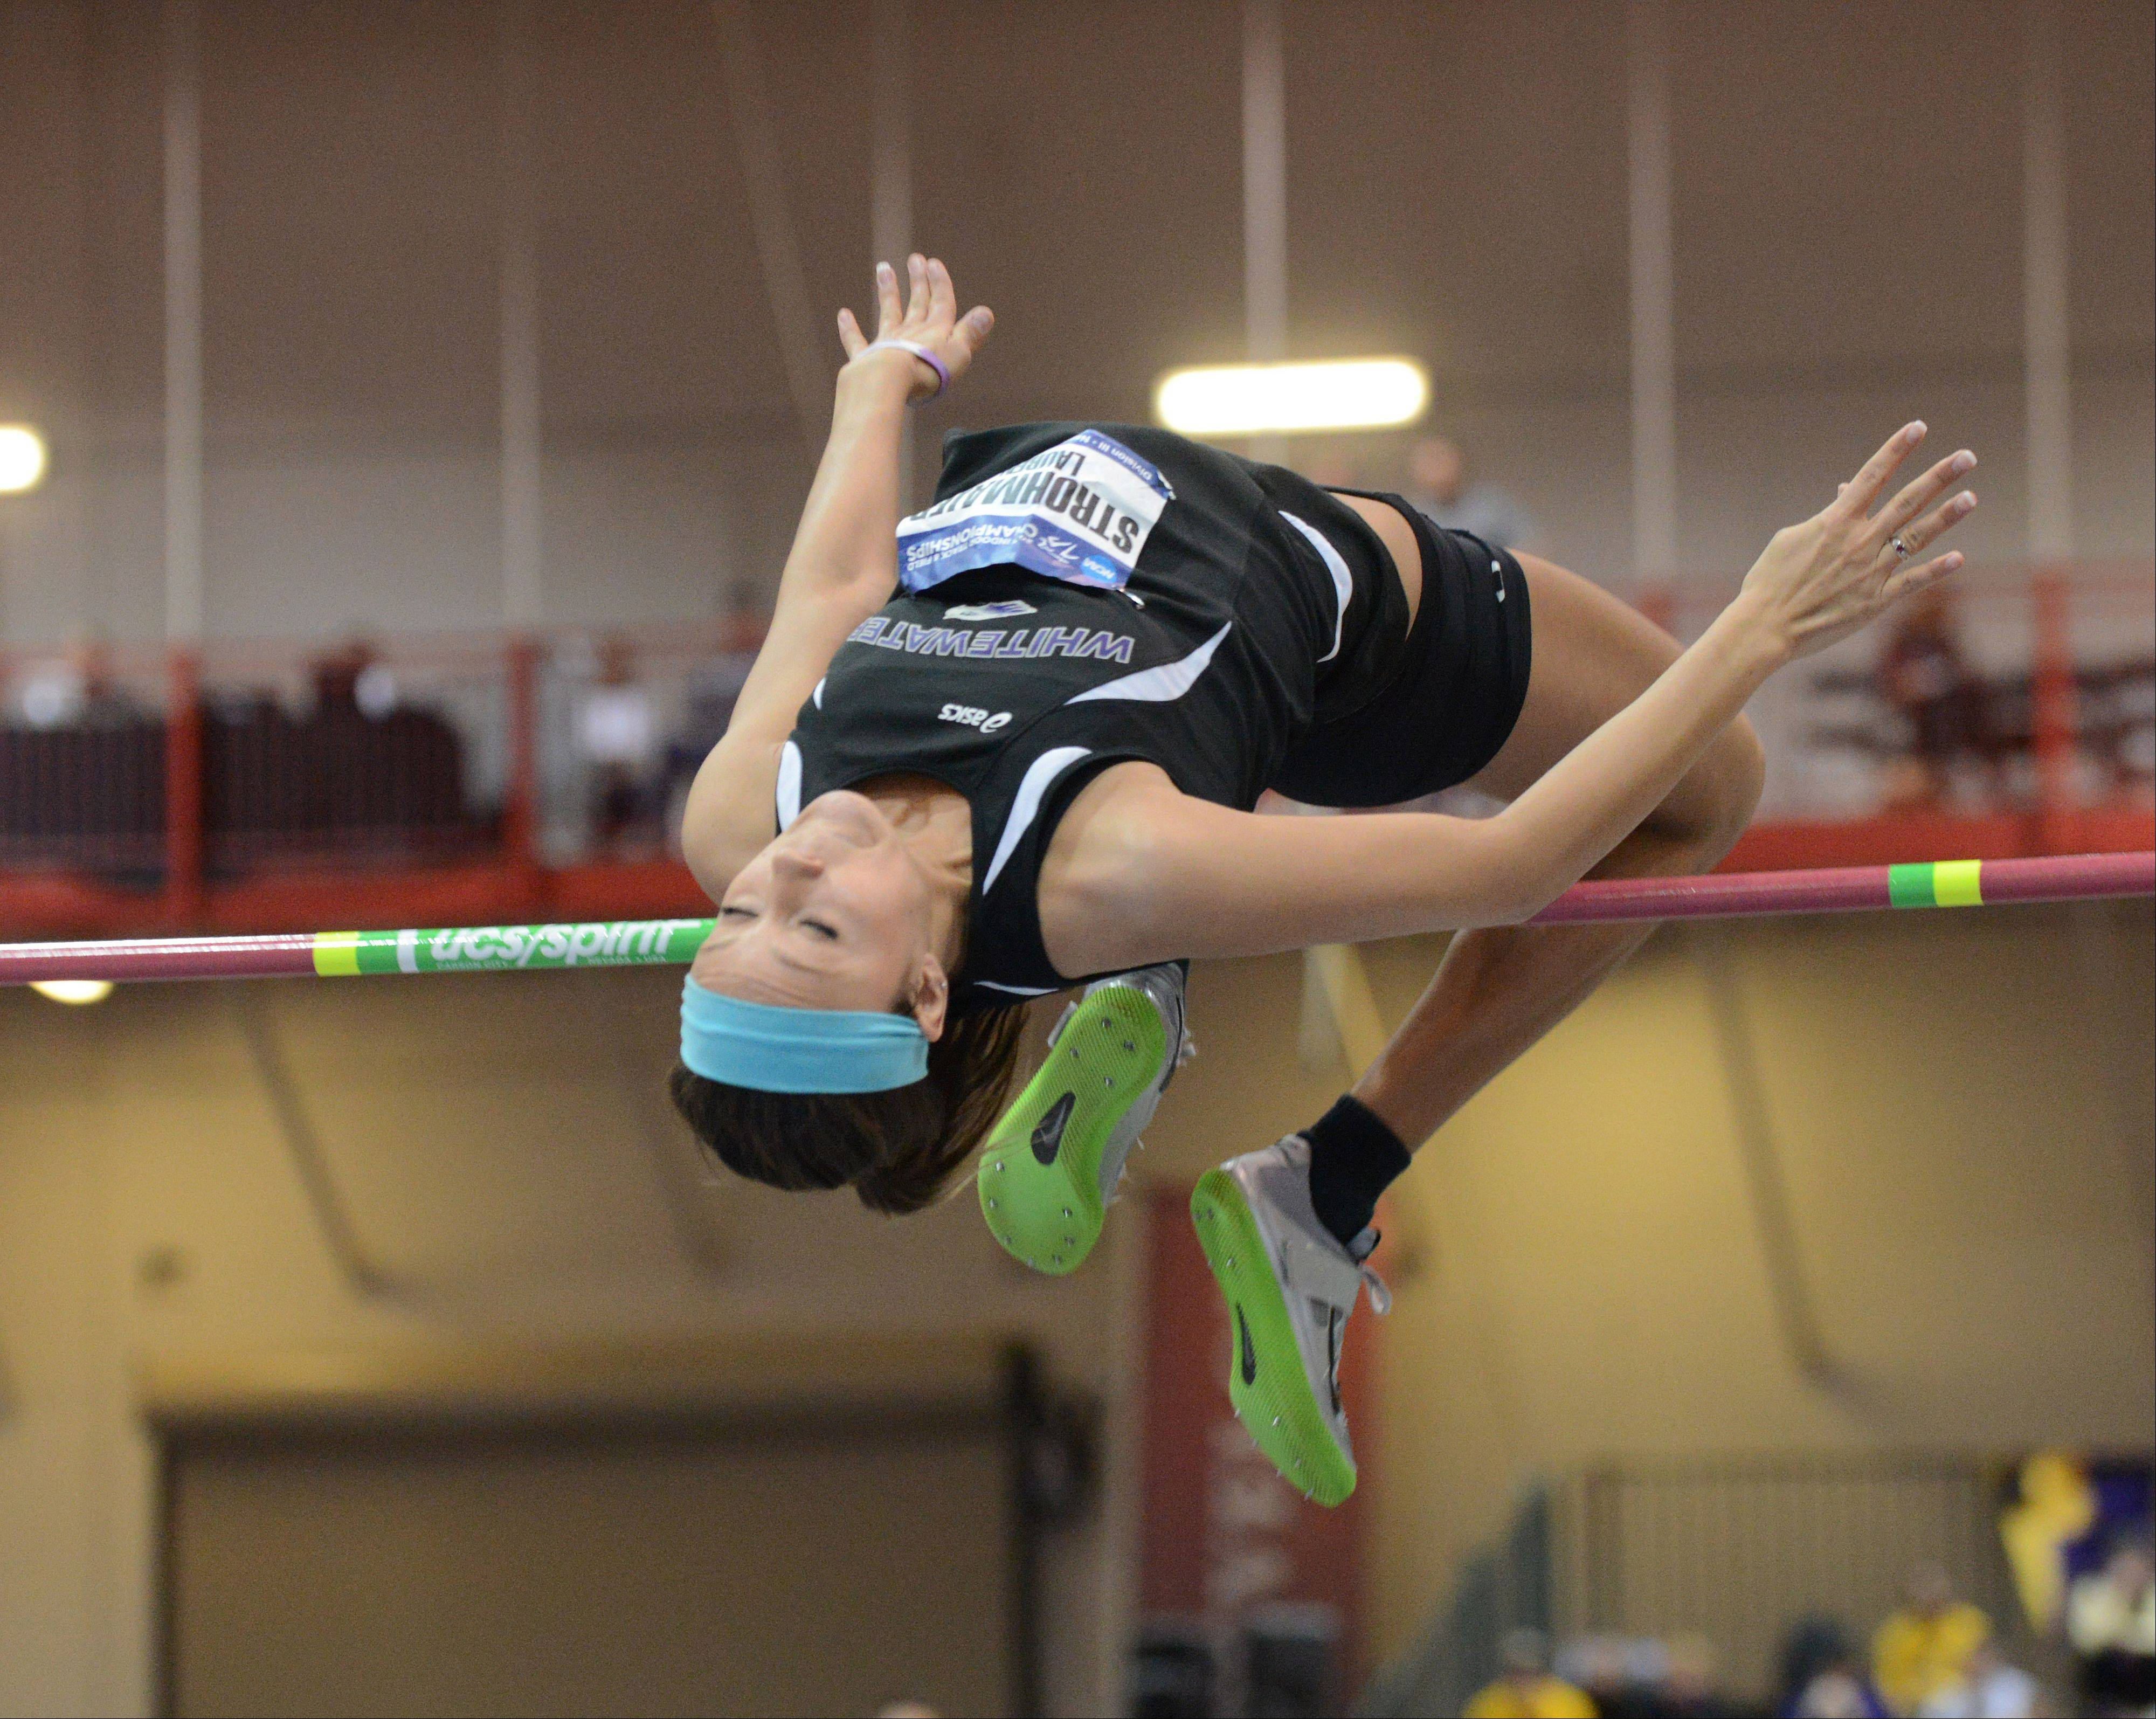 Lauren Strohmaier of the University of Wisconsin-Whitewater takes a leap in the high jump during Saturday's NCAA Division III Indoor Track and Field Championships at North Central College. About 470 athletes competed in 15 events during the two-day championship meet.